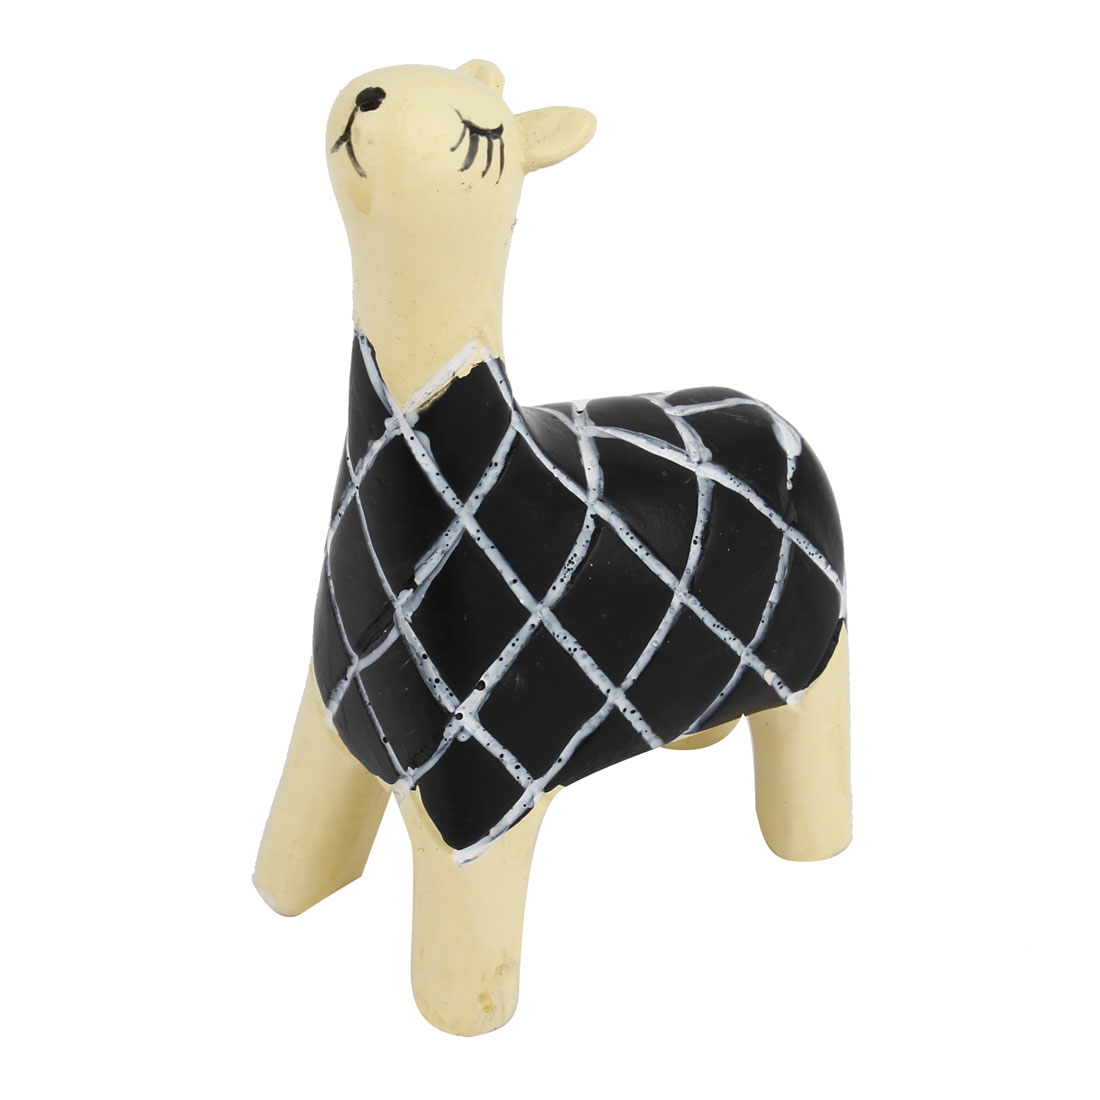 Tabletop Adorn Handmade Craft Grass Mud Horse Shape Decor Black Beige